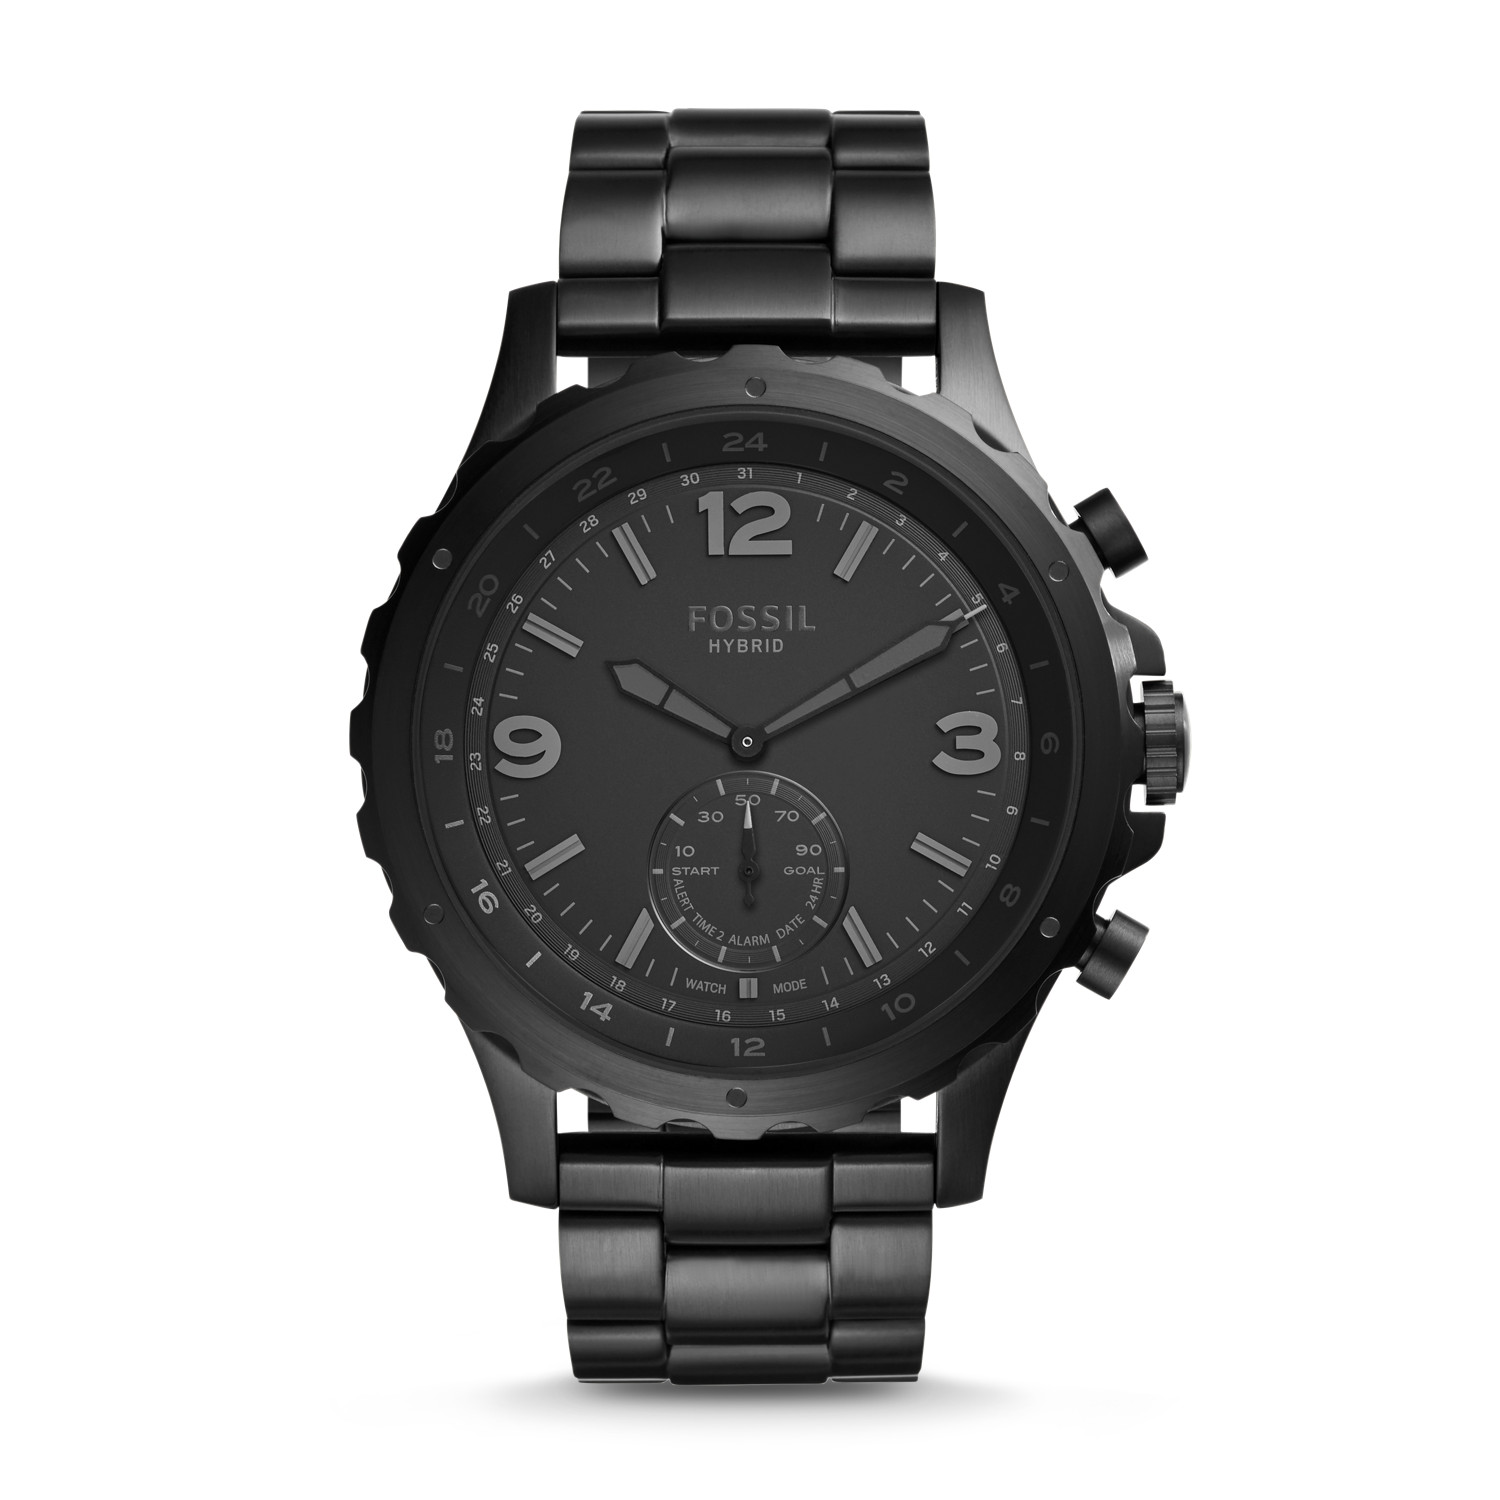 3ccbb3332c5 Hybrid Smartwatch - Nate Black Stainless Steel - Fossil